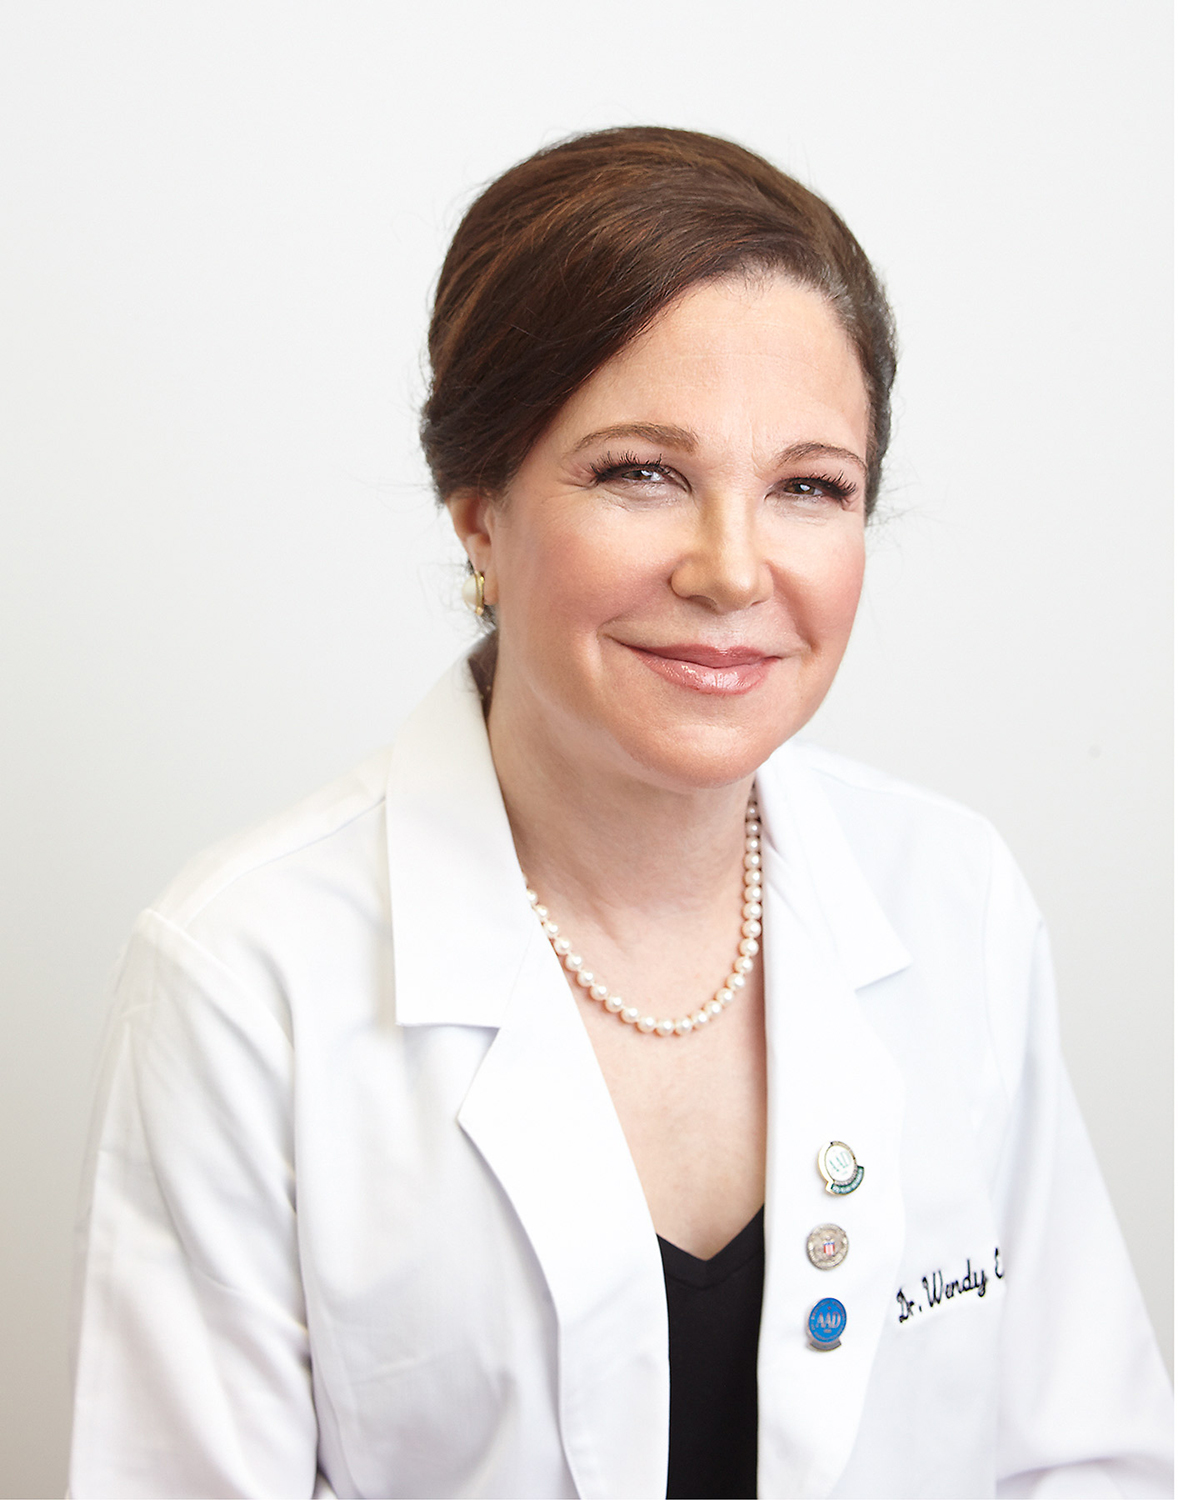 Dr.-Wendy-Epstein_Doctor-Professional-Profile-Portrait-By-Jonathan-R.-Beckerman-Photography.jpg